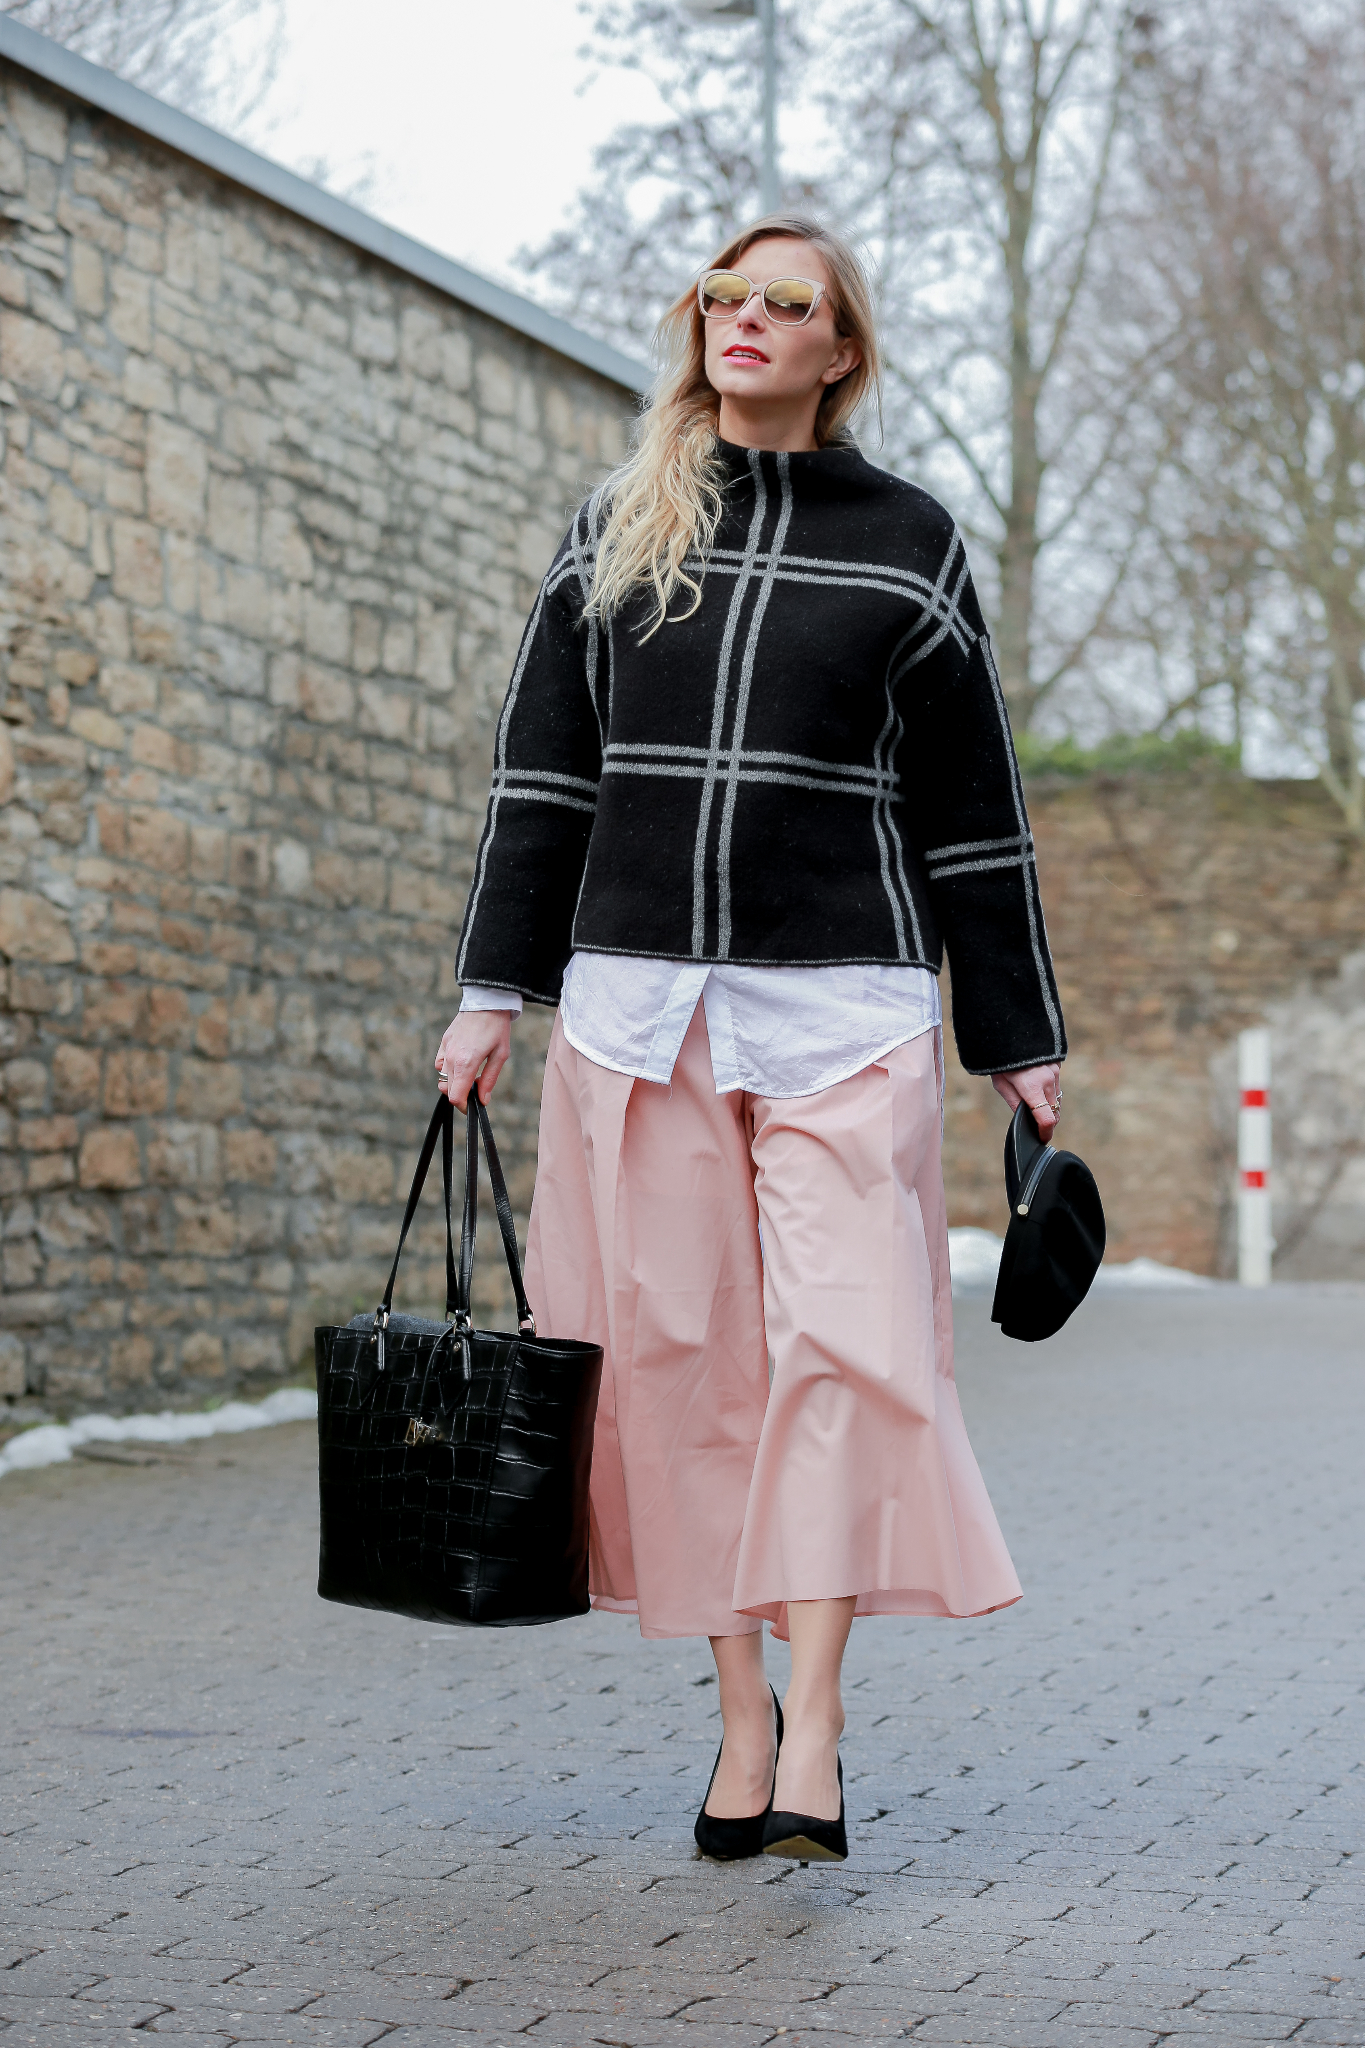 Fashion_Outfit_Pastel_Culotte_Jimmy_Choo-16